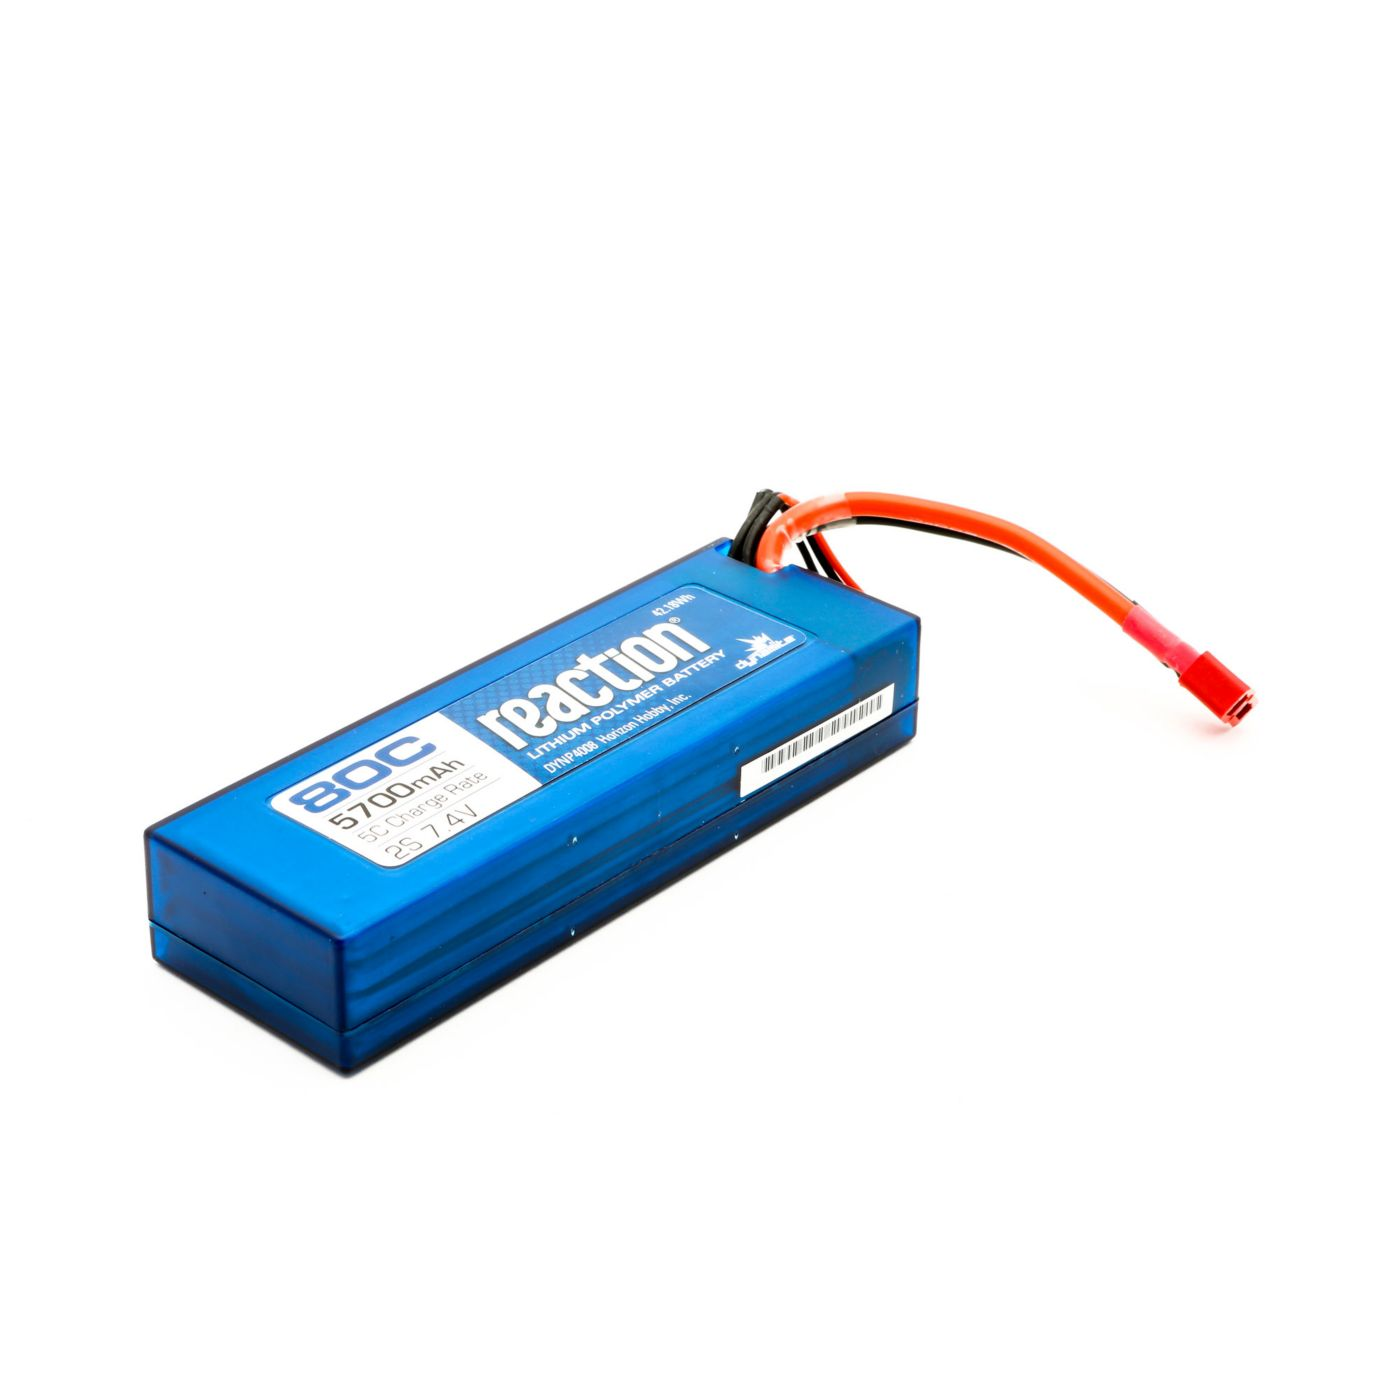 Dynamite Reaction 5700mAh 7.4V 2S 80C LiPoly Hard Case - Deans